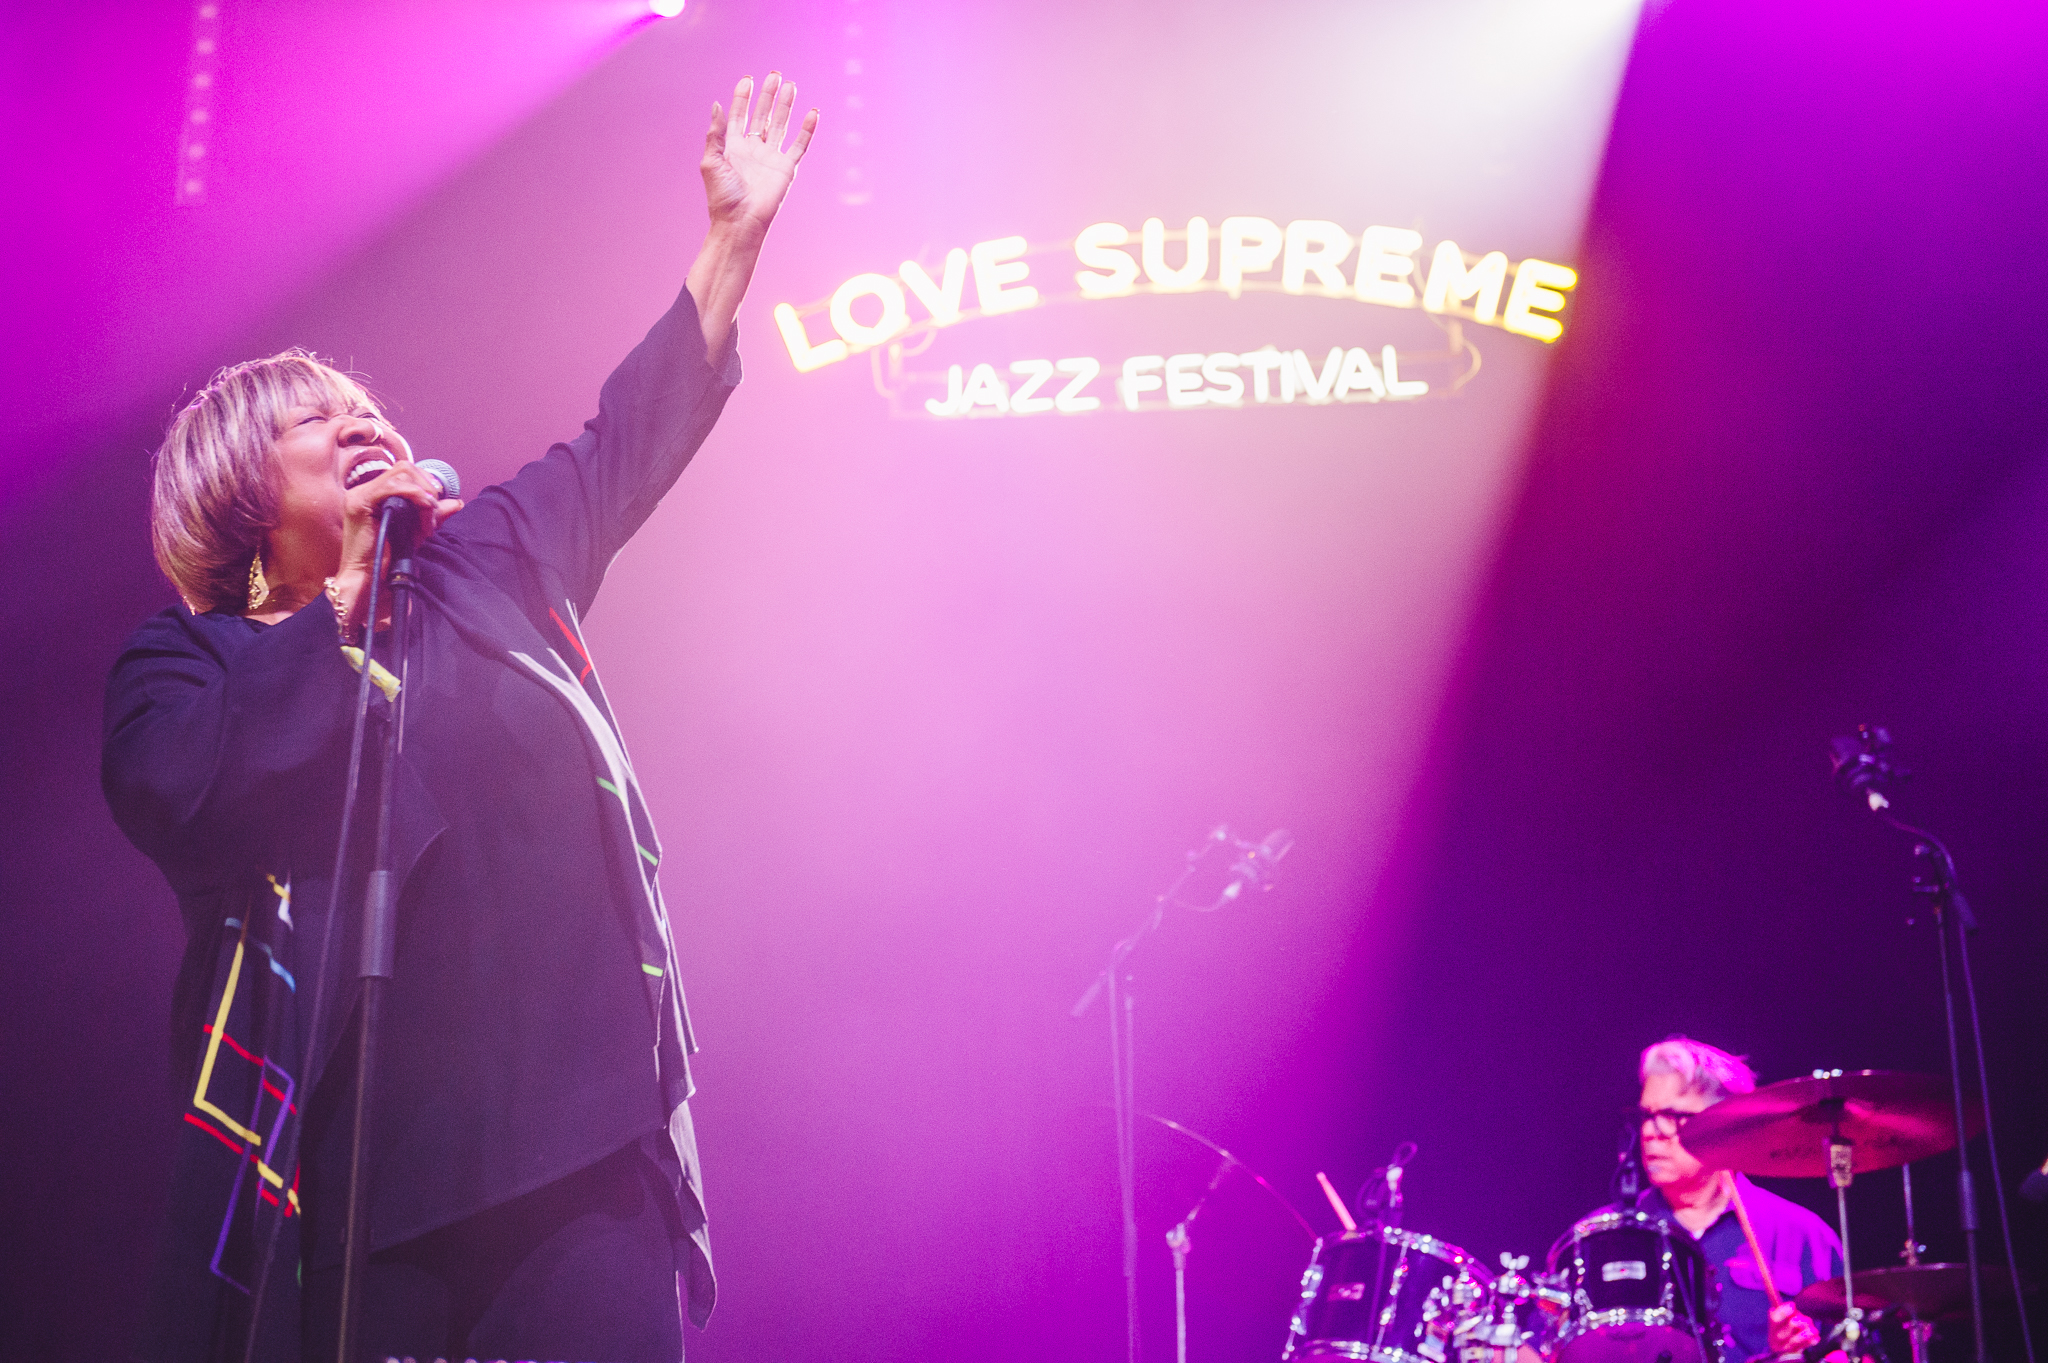 Five Artists Not to Be Missed at Love Supreme Festival 2019